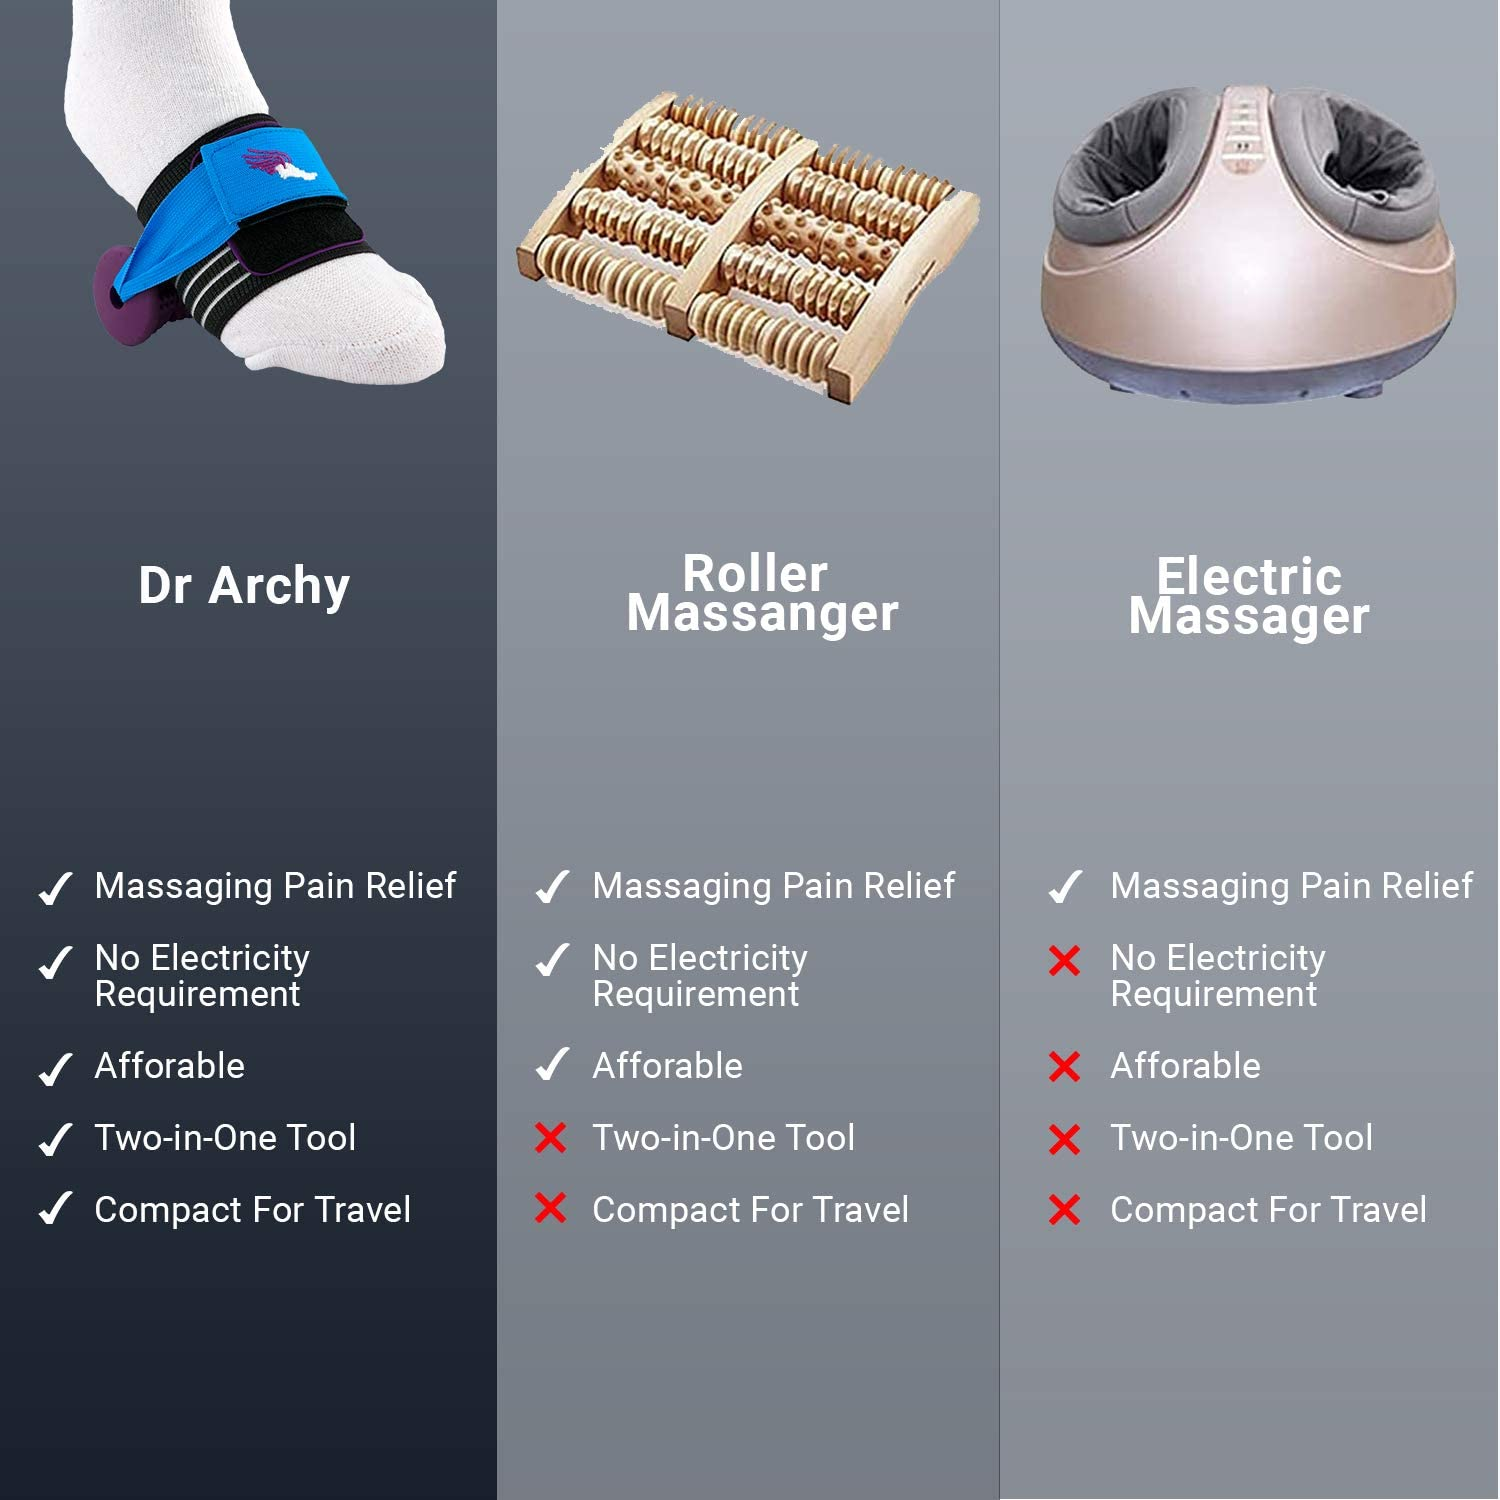 Foot Roller Massager for Tired Feet and Heel Pain by Dr. Archy – Multi-Function Tool Relieves Plantar Fasciitis, Heel Spur, Aching Arch - Reflexology Tension Release